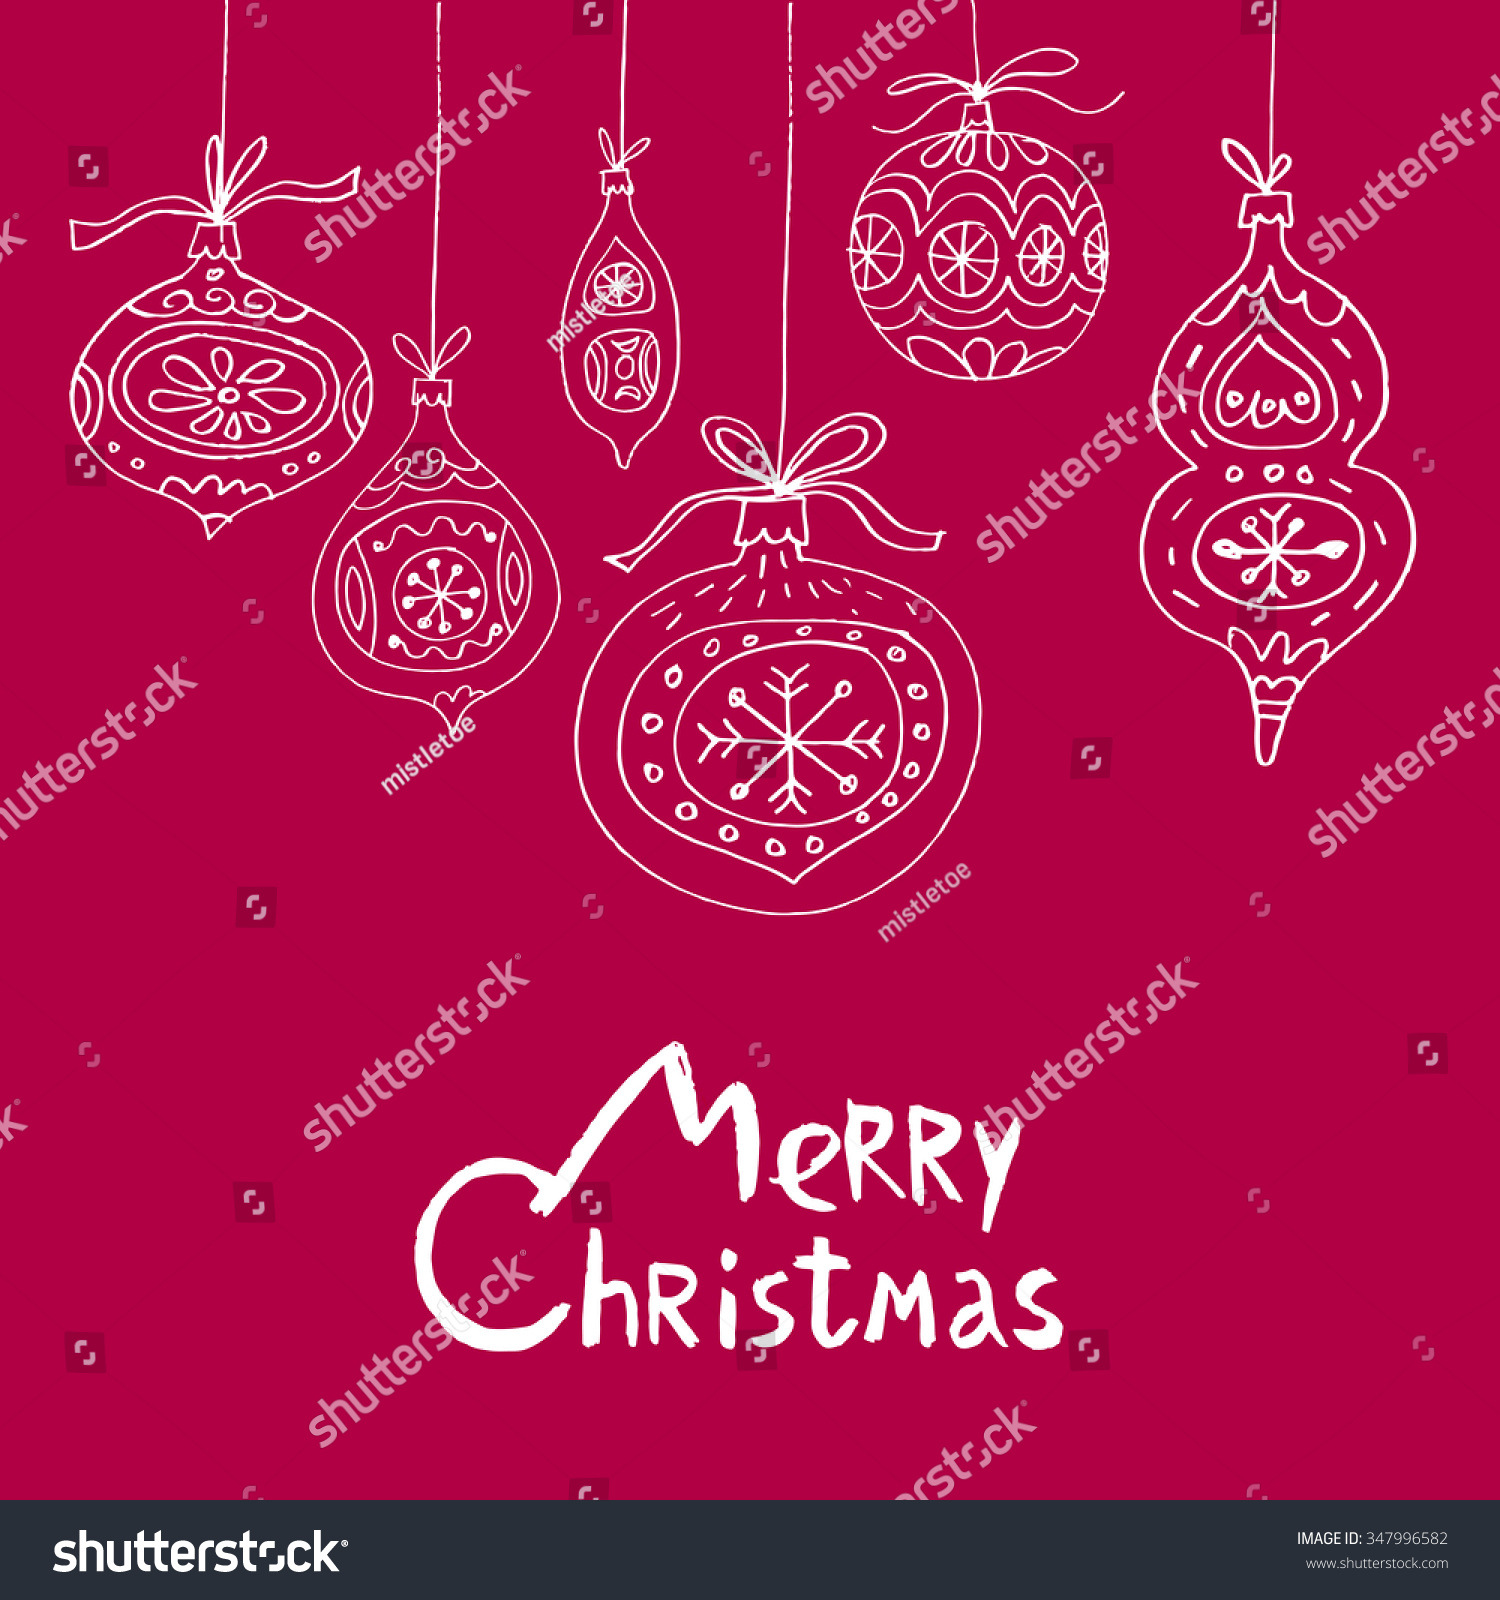 Unique Hand Drawn Christmas Greeting Card Stock Vector Royalty Free